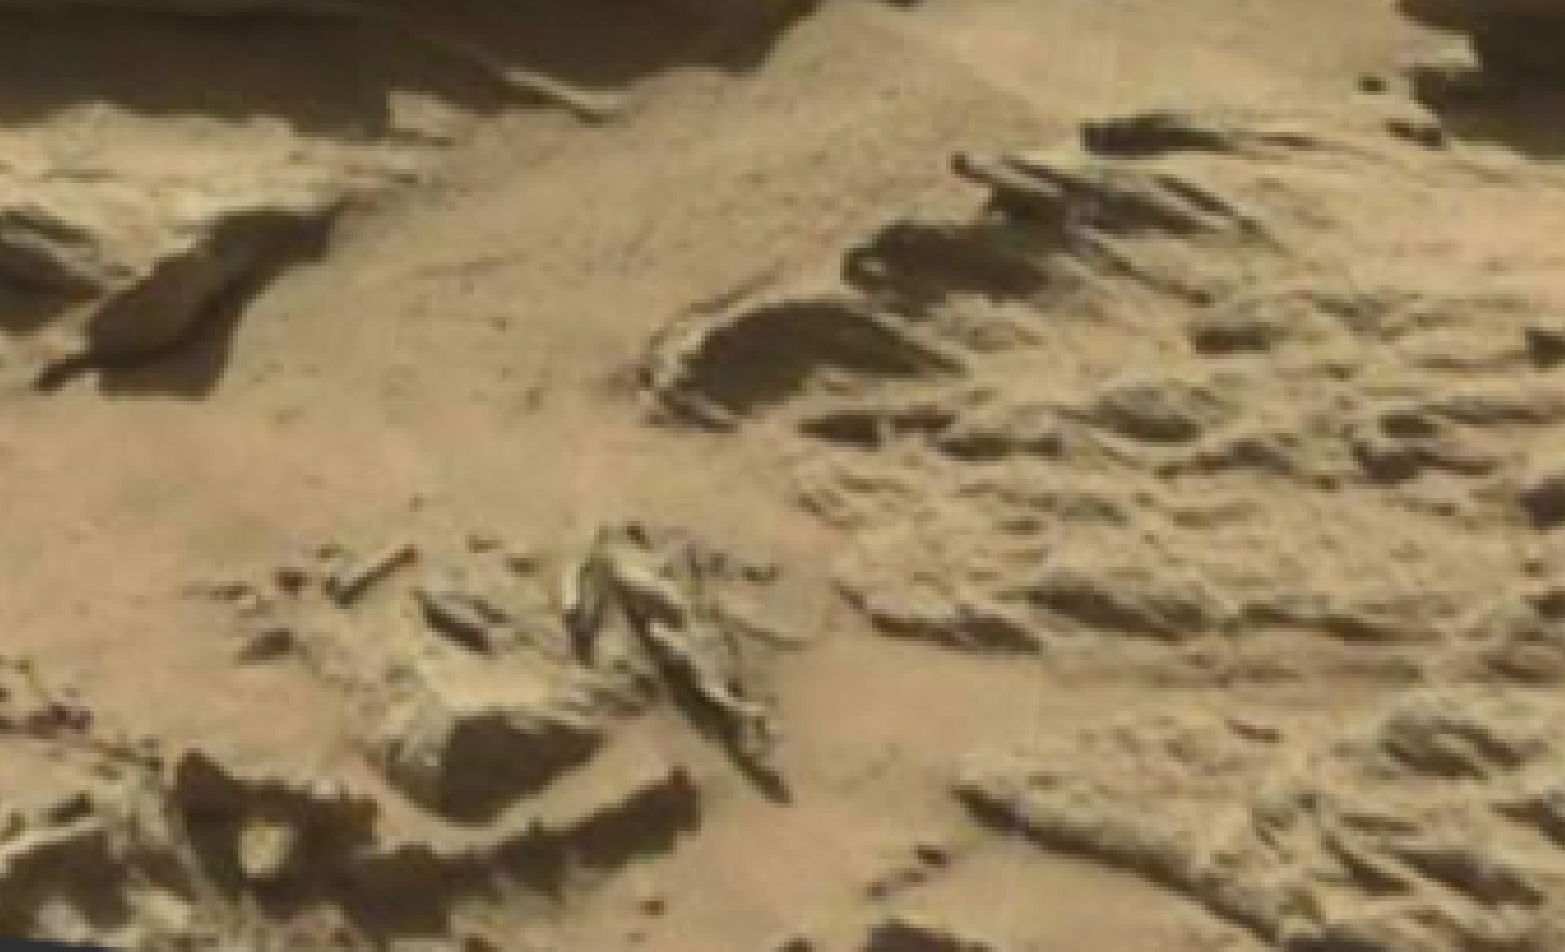 mars sol 1298 anomaly-artifacts 14 was life on mars